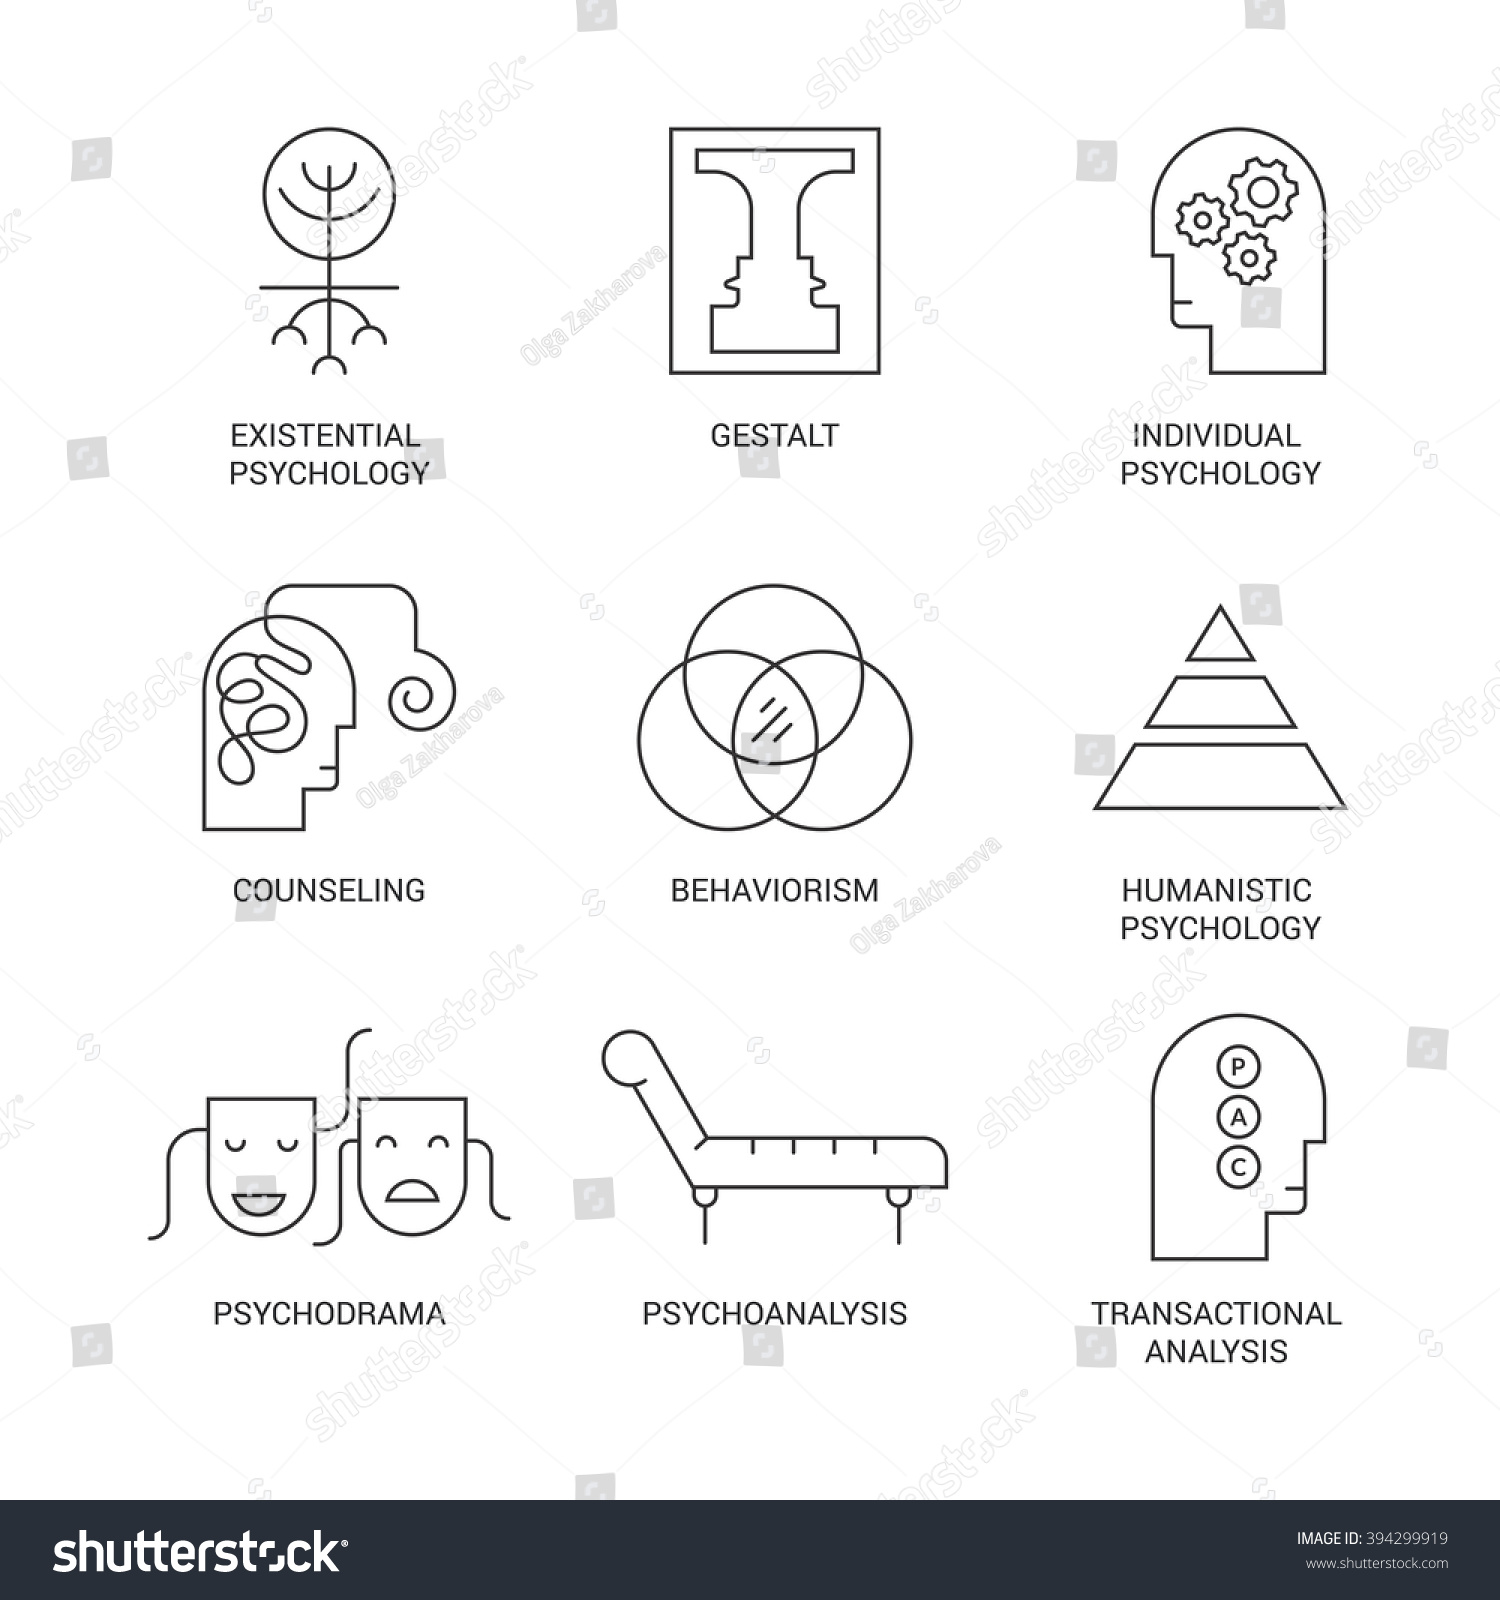 Royalty Free Symbols Of Different Psychology 394299919 Stock Photo